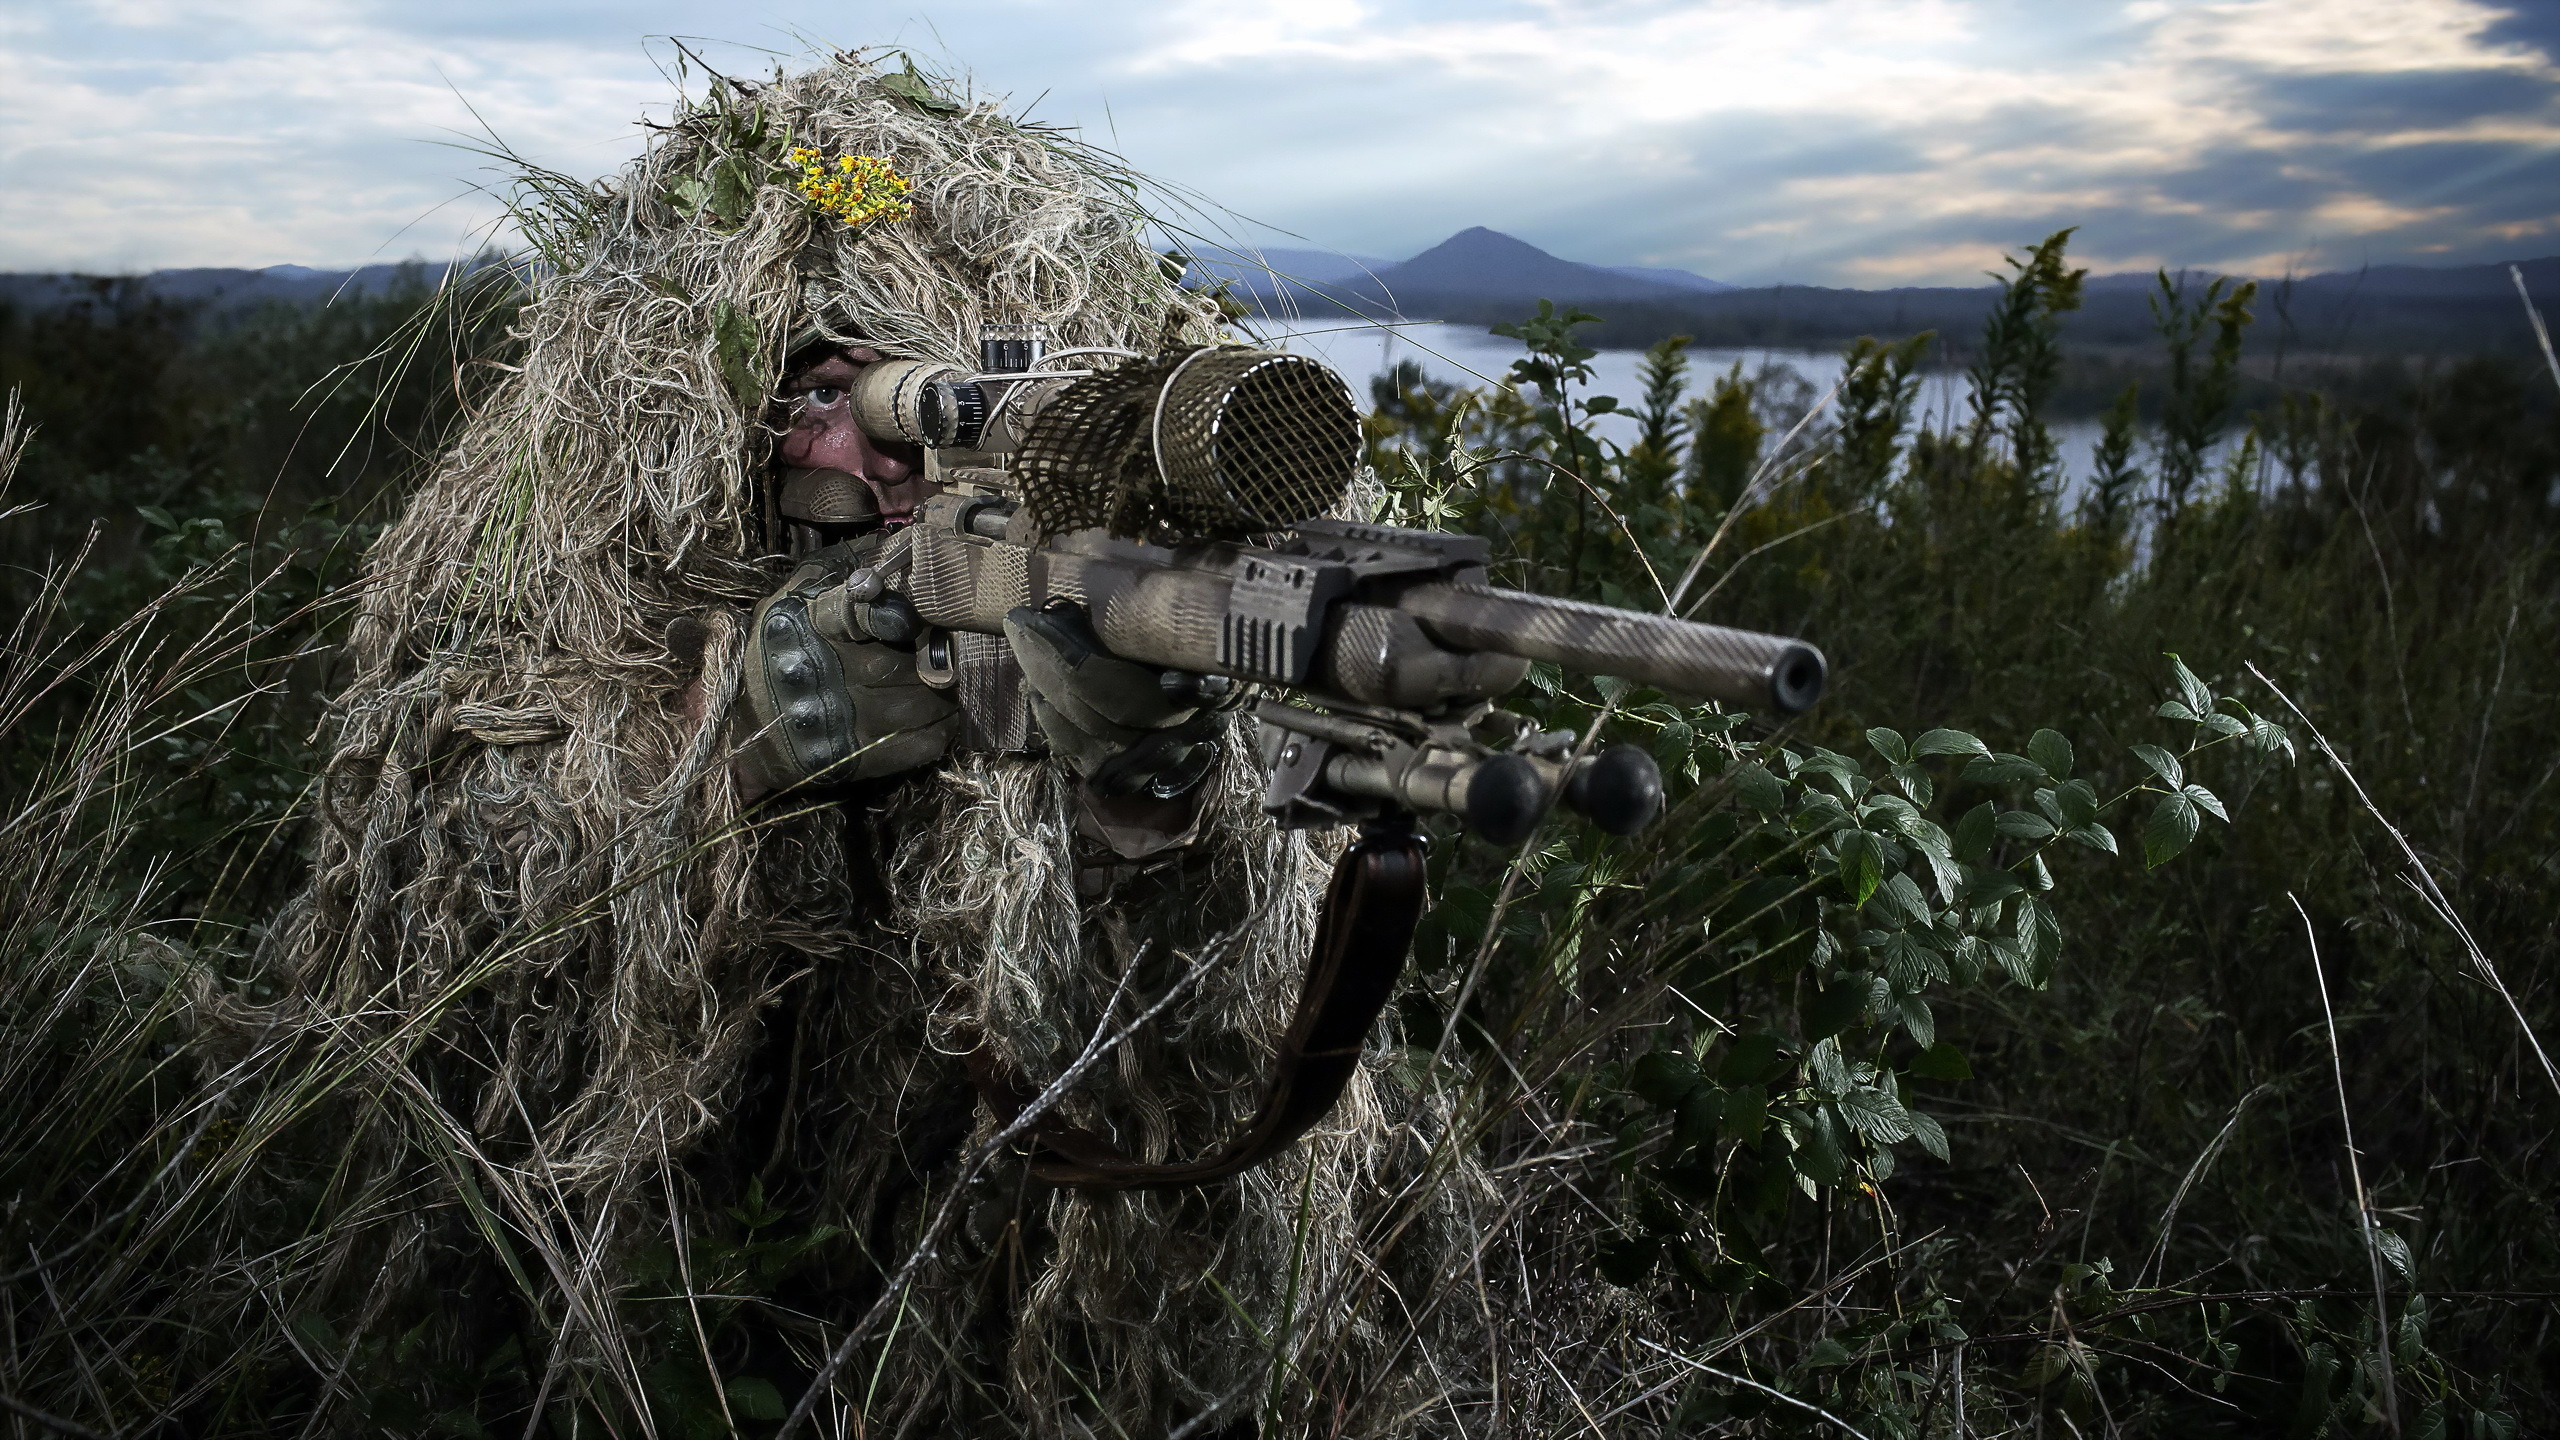 Sniper rifle soldier weapon gun military d wallpaper background 2560x1440